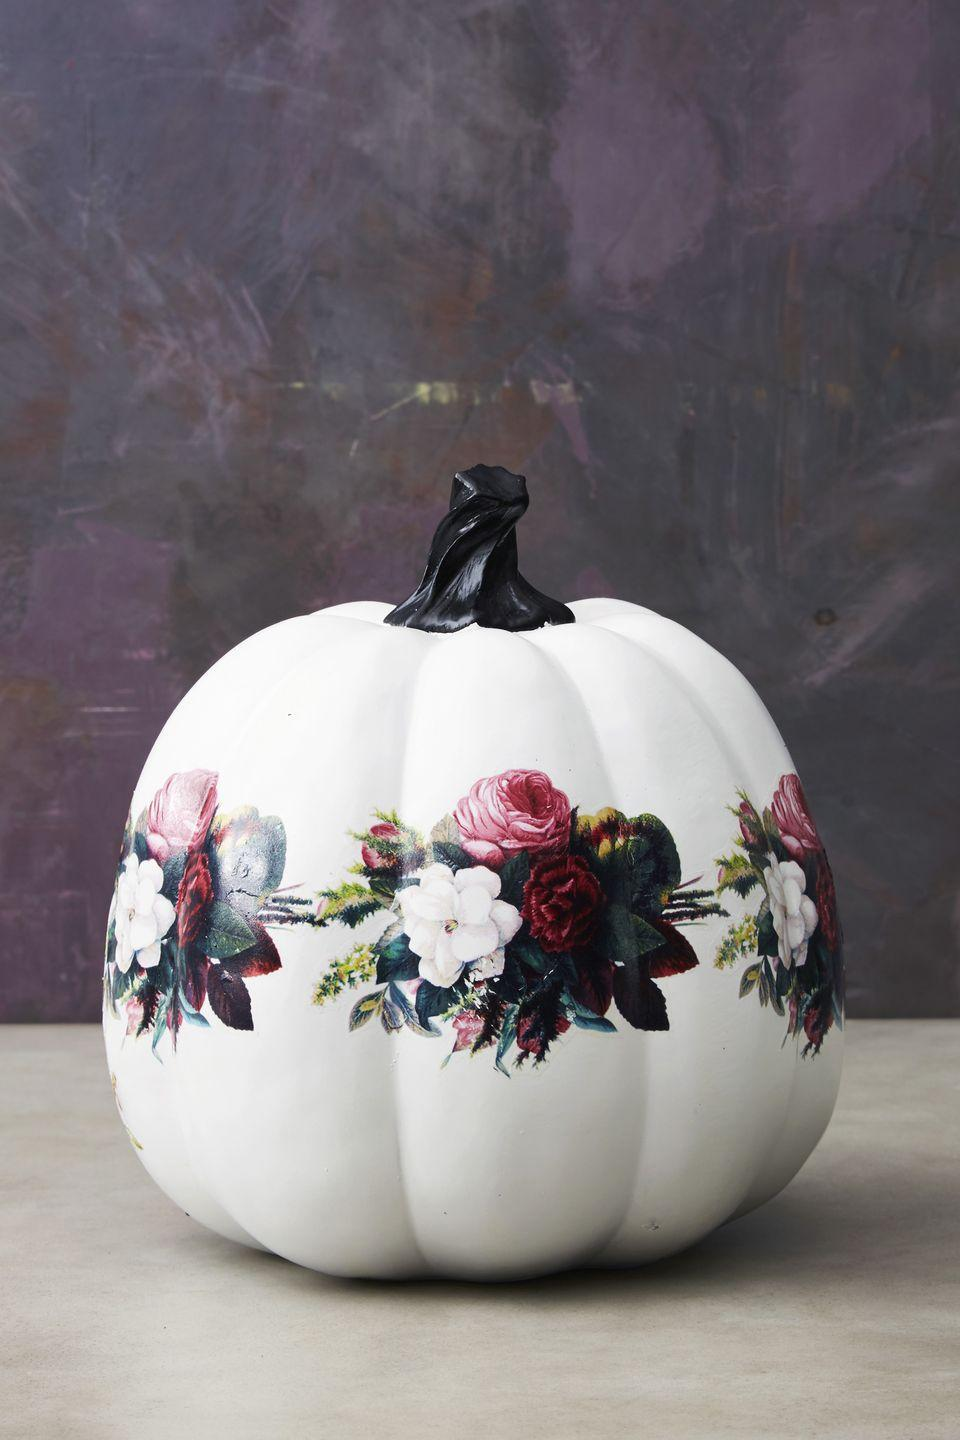 """<p>No intricate (ahem, complicated) painting here. After painting the pumpkin white, adhere temporary tattoos on the pumpkin, just as you would on skin. For a botanical look, connect a ring of floral tattoos around the middle. </p><p><a class=""""link rapid-noclick-resp"""" href=""""https://www.amazon.com/ULTNICE-Temporary-Tattoos-Stickers-Blossoms/dp/B072F5WDC8/?tag=syn-yahoo-20&ascsubtag=%5Bartid%7C10055.g.2592%5Bsrc%7Cyahoo-us"""" rel=""""nofollow noopener"""" target=""""_blank"""" data-ylk=""""slk:SHOP FLOWER TATTOOS"""">SHOP FLOWER TATTOOS</a></p>"""